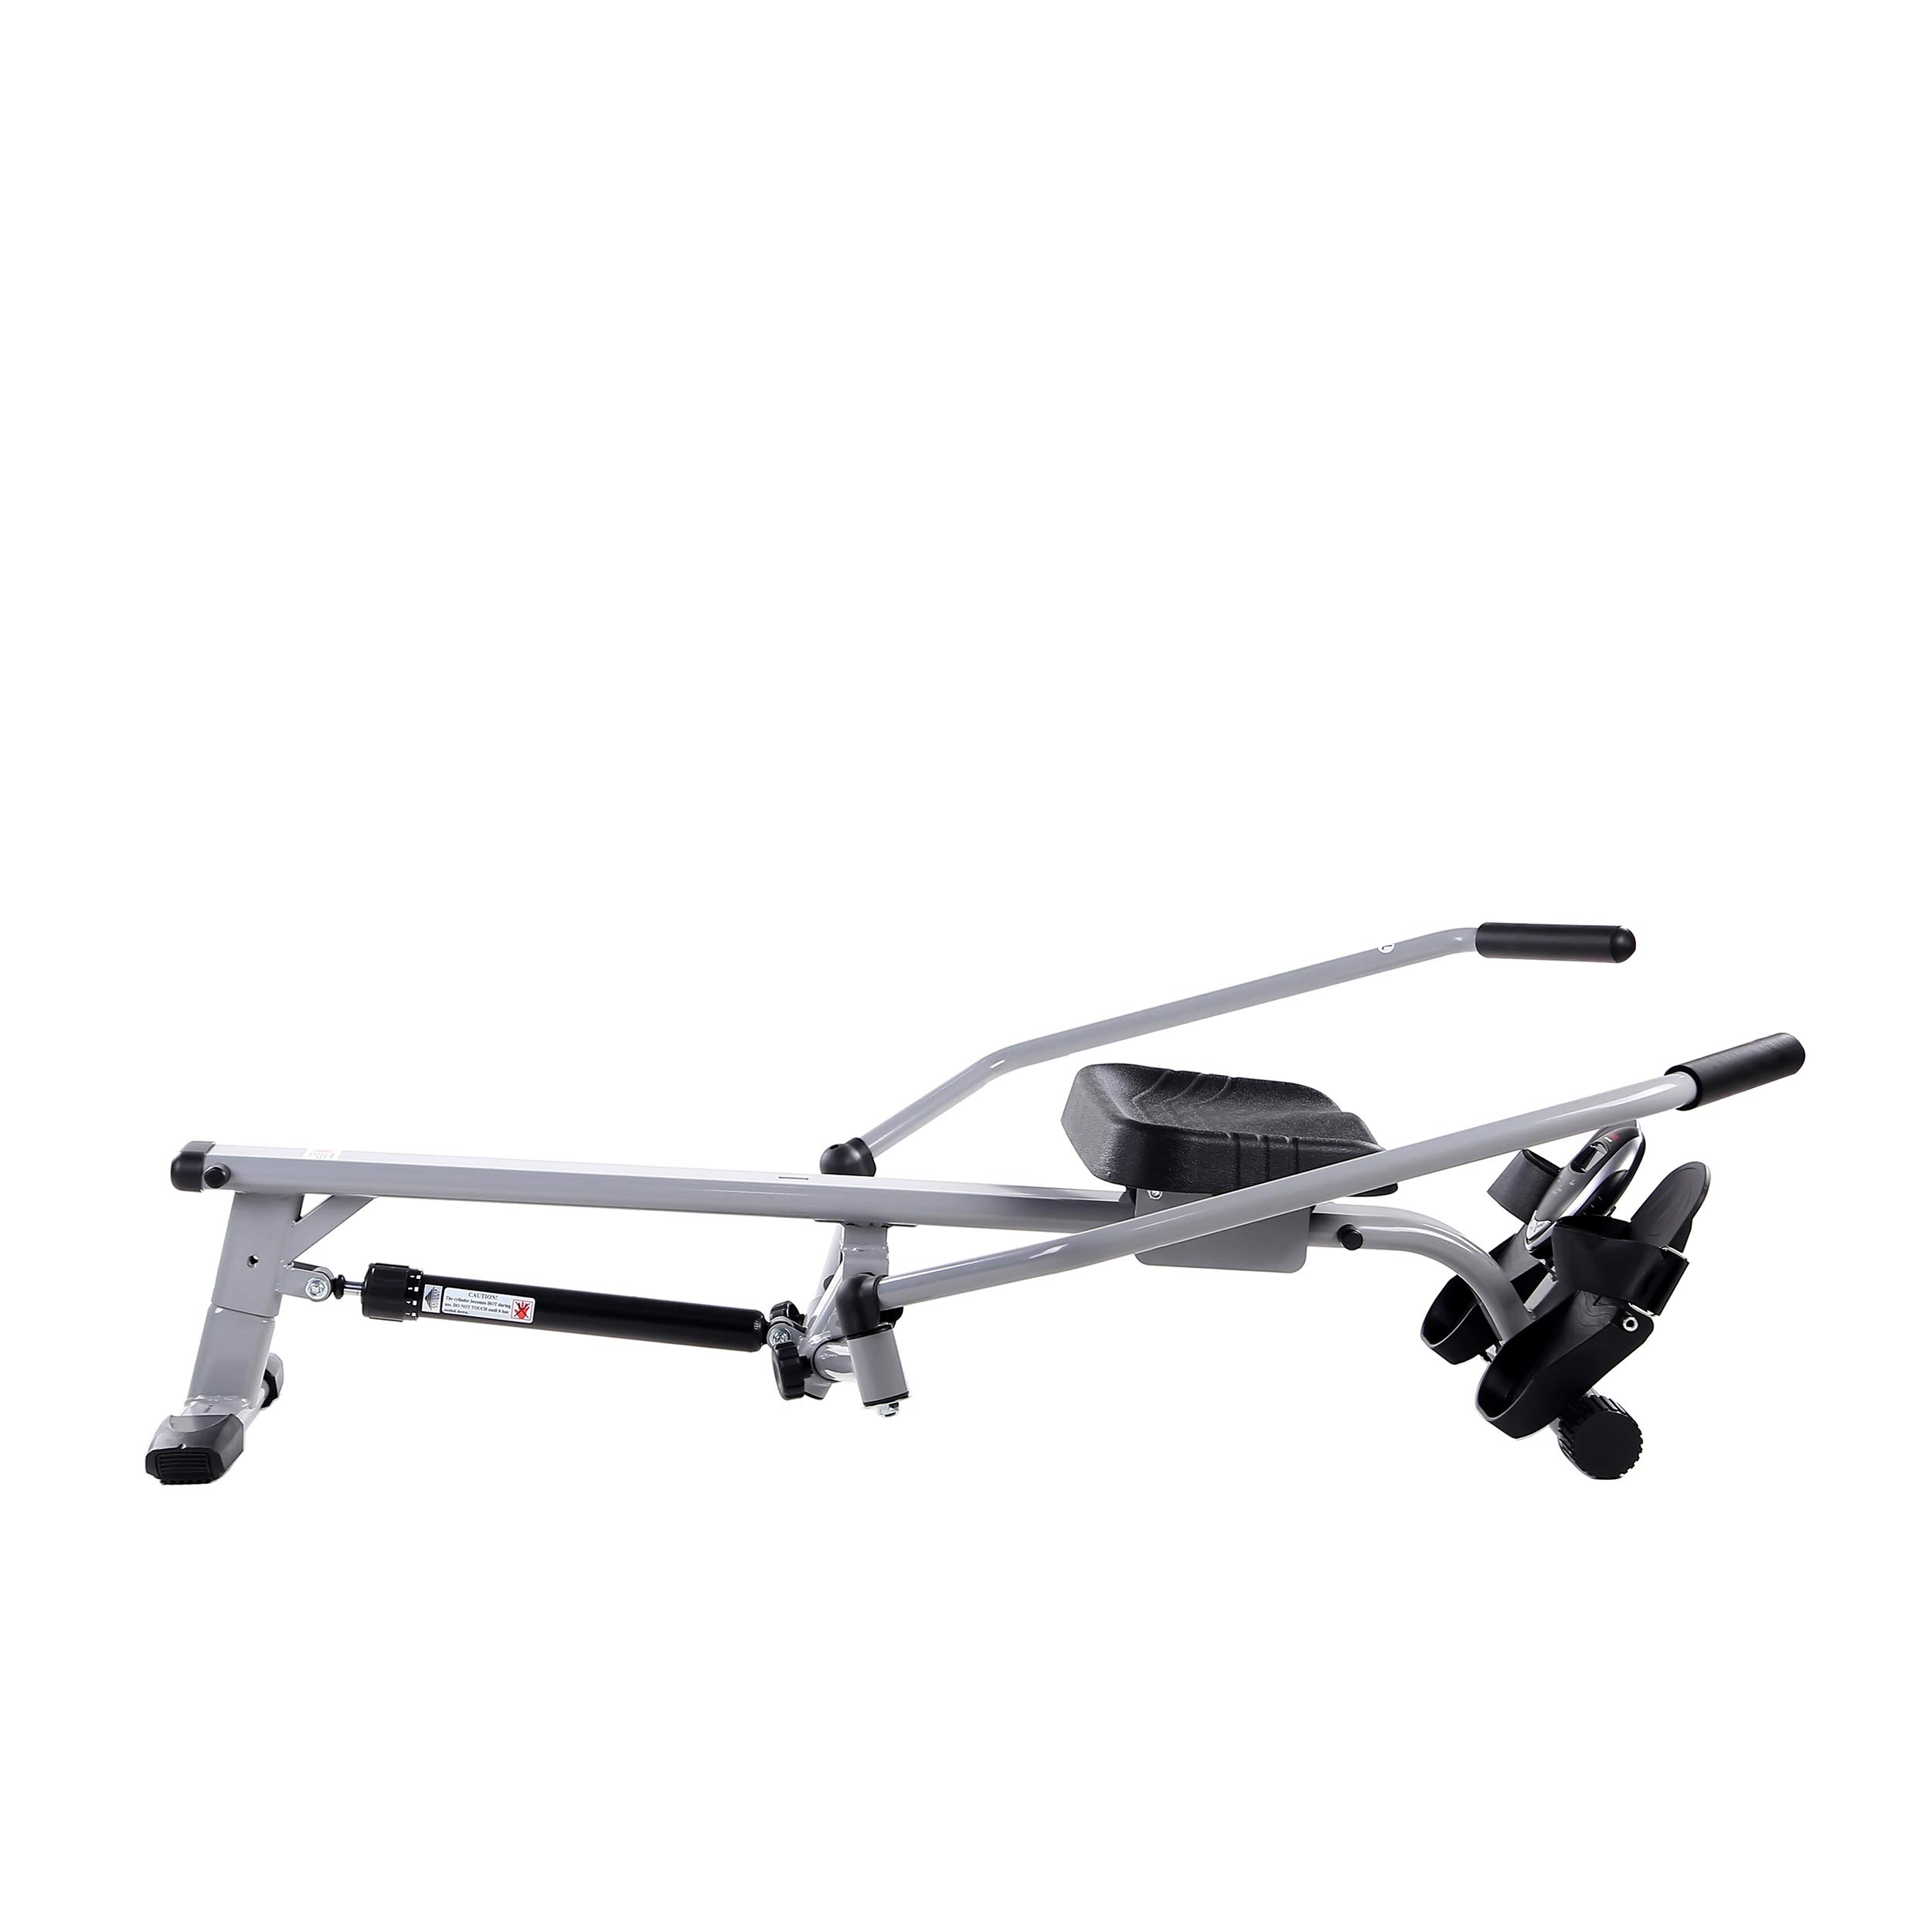 Sunny Health & Fitness SF-RW5639 Full Motion Rowing Machine Rower w/ 350 lb Weight Capacity and LCD Monitor by Sunny Health & Fitness (Image #6)